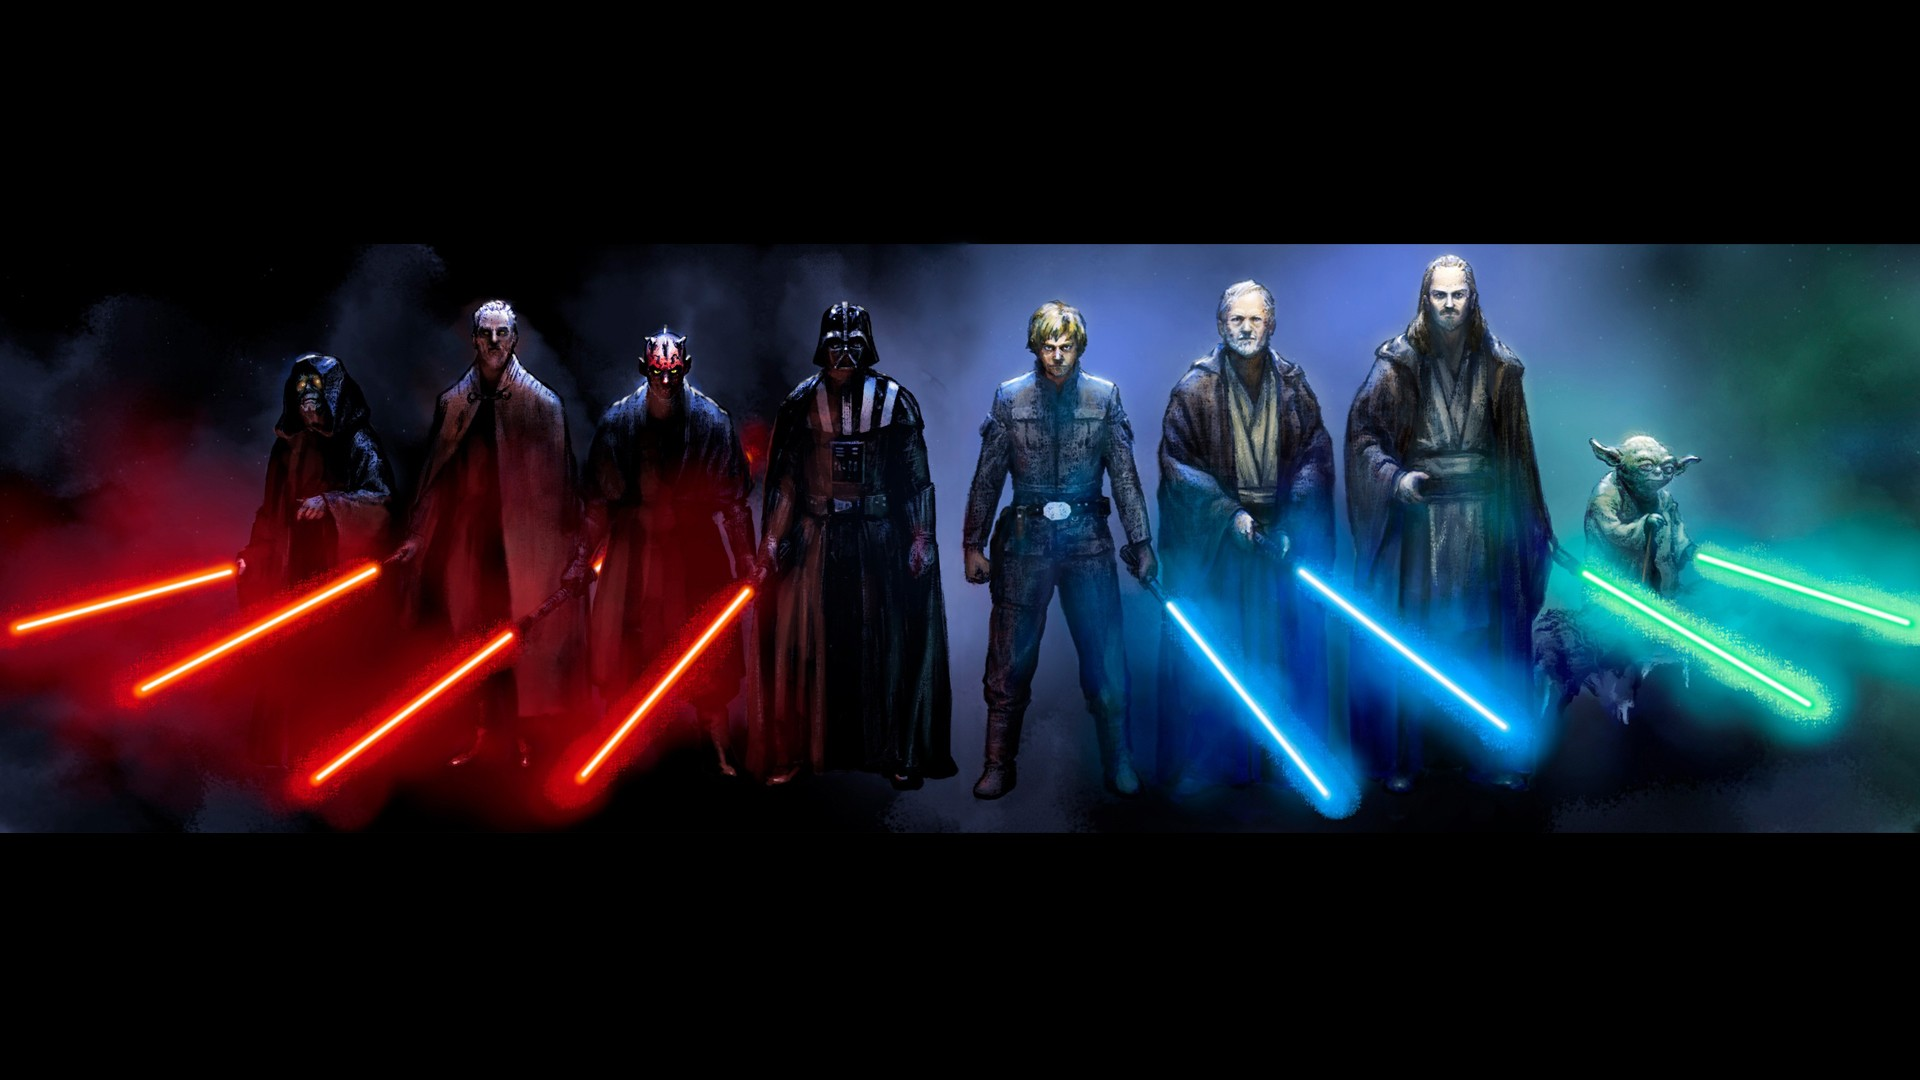 Star Wars Wallpaper 1920X1080 wallpaper   856079 1920x1080